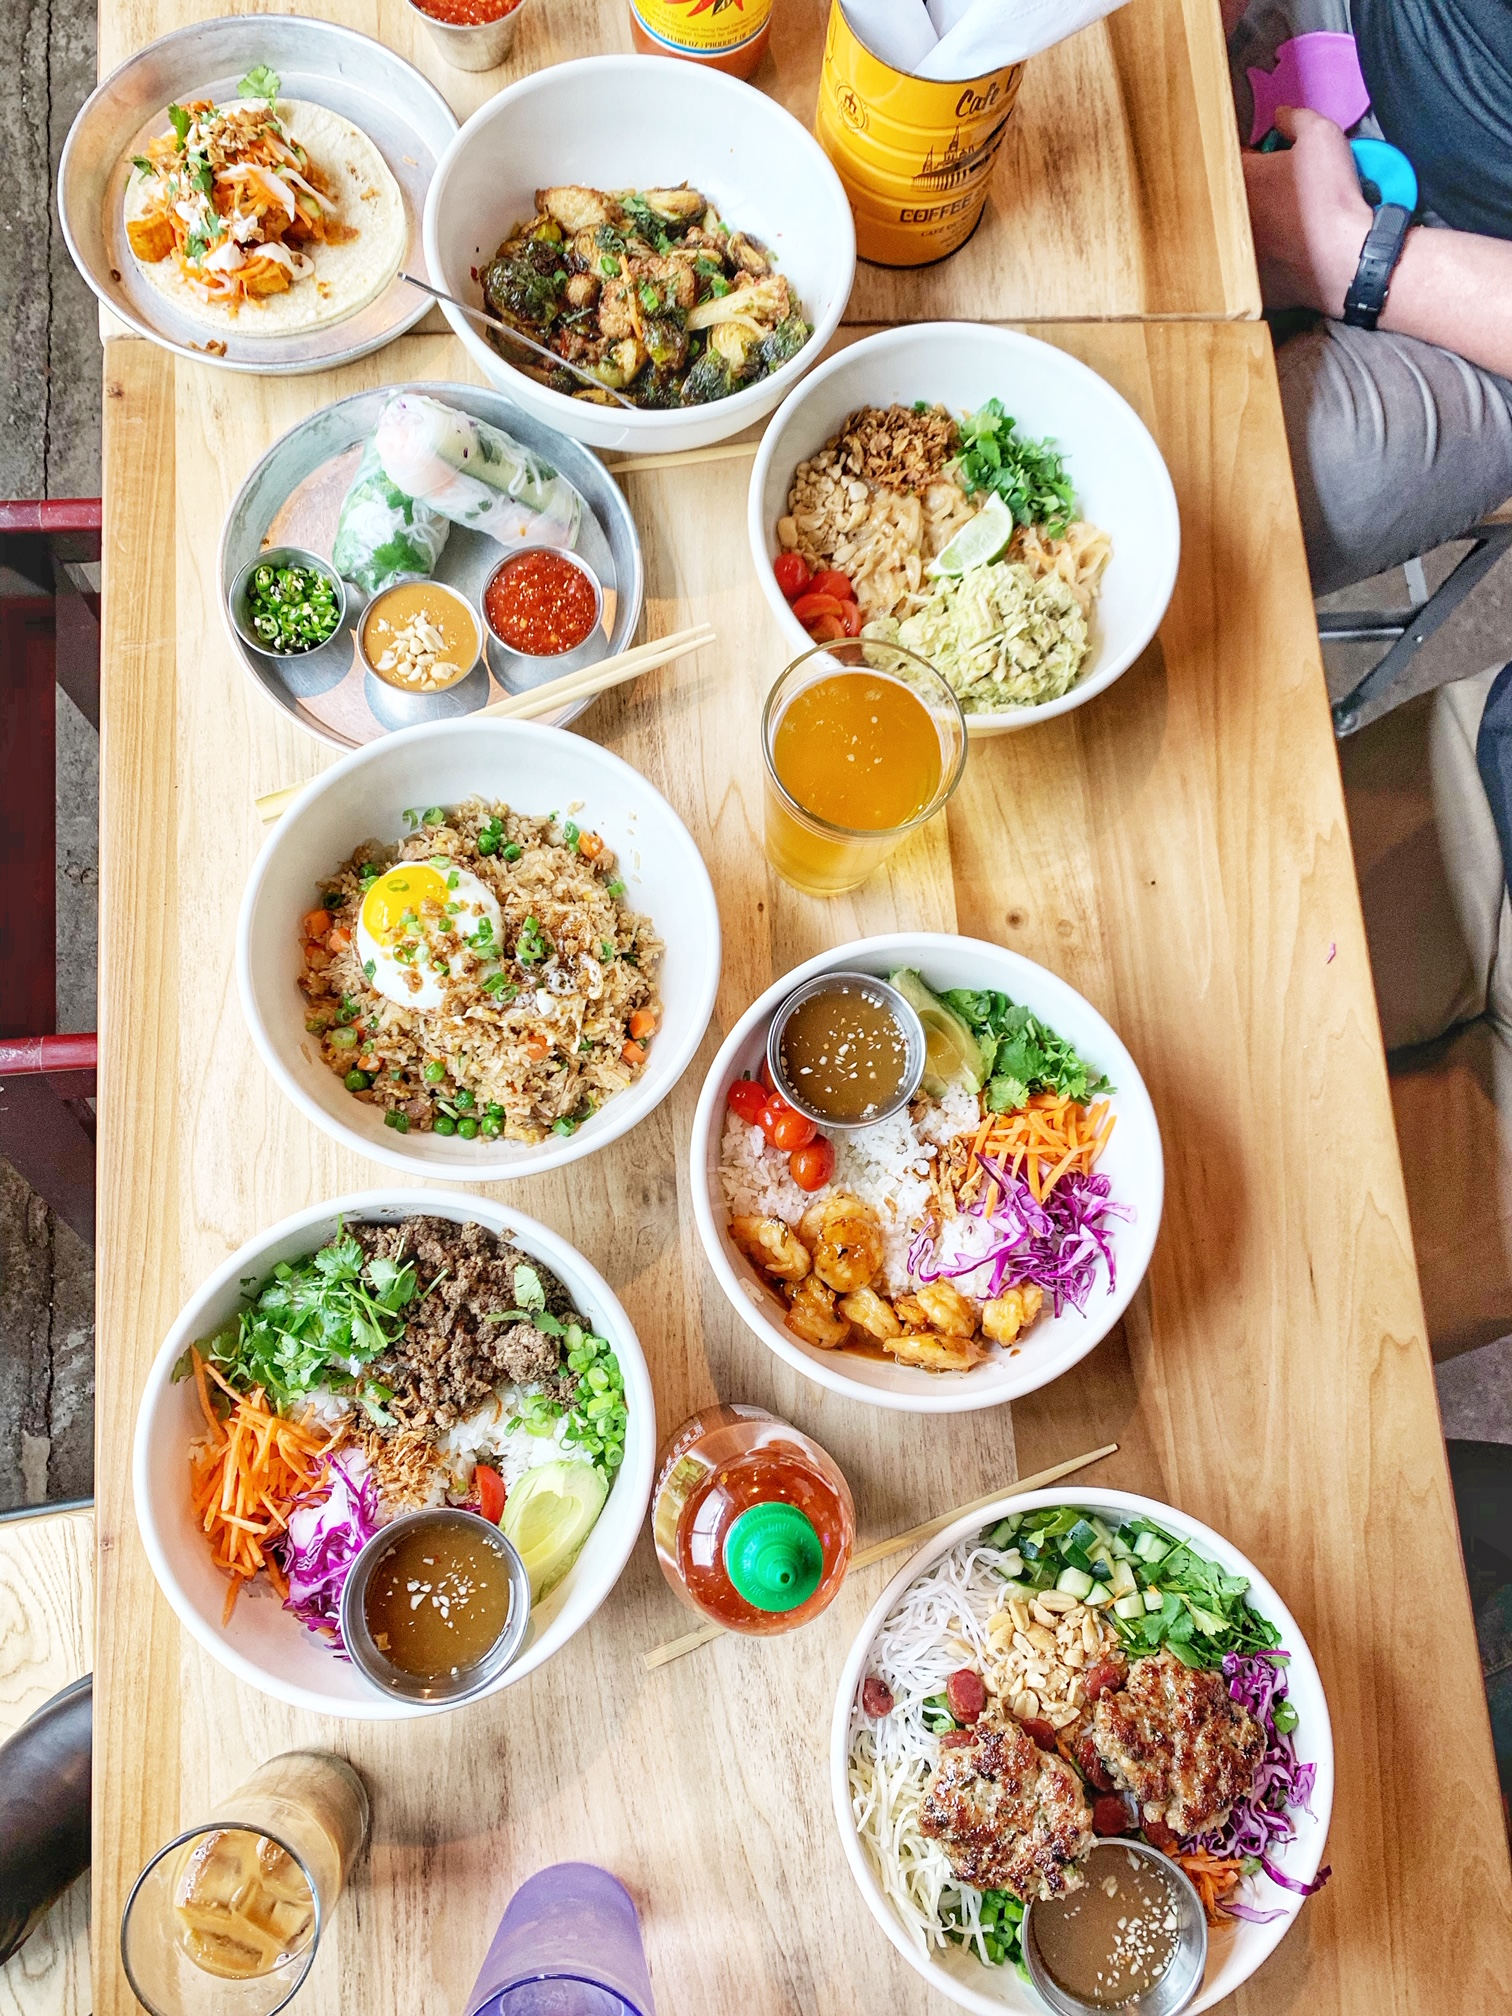 Giveaway for Mouthwatering Vietnamese Food